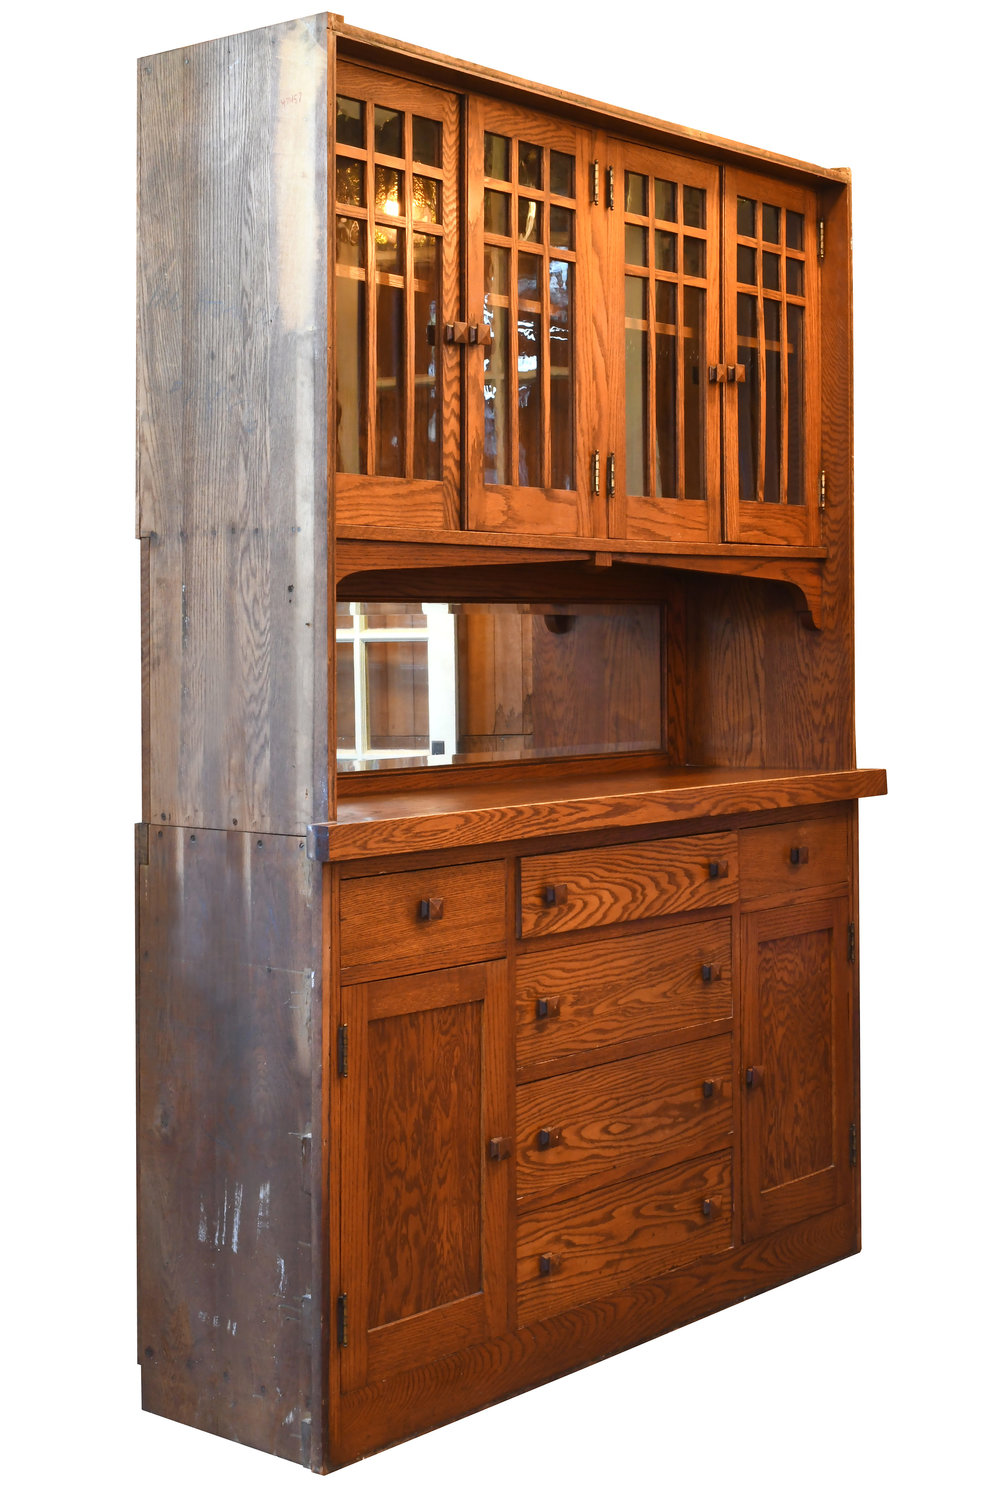 47457-craftsman-oak-built-in-buffet-angle-view.jpg